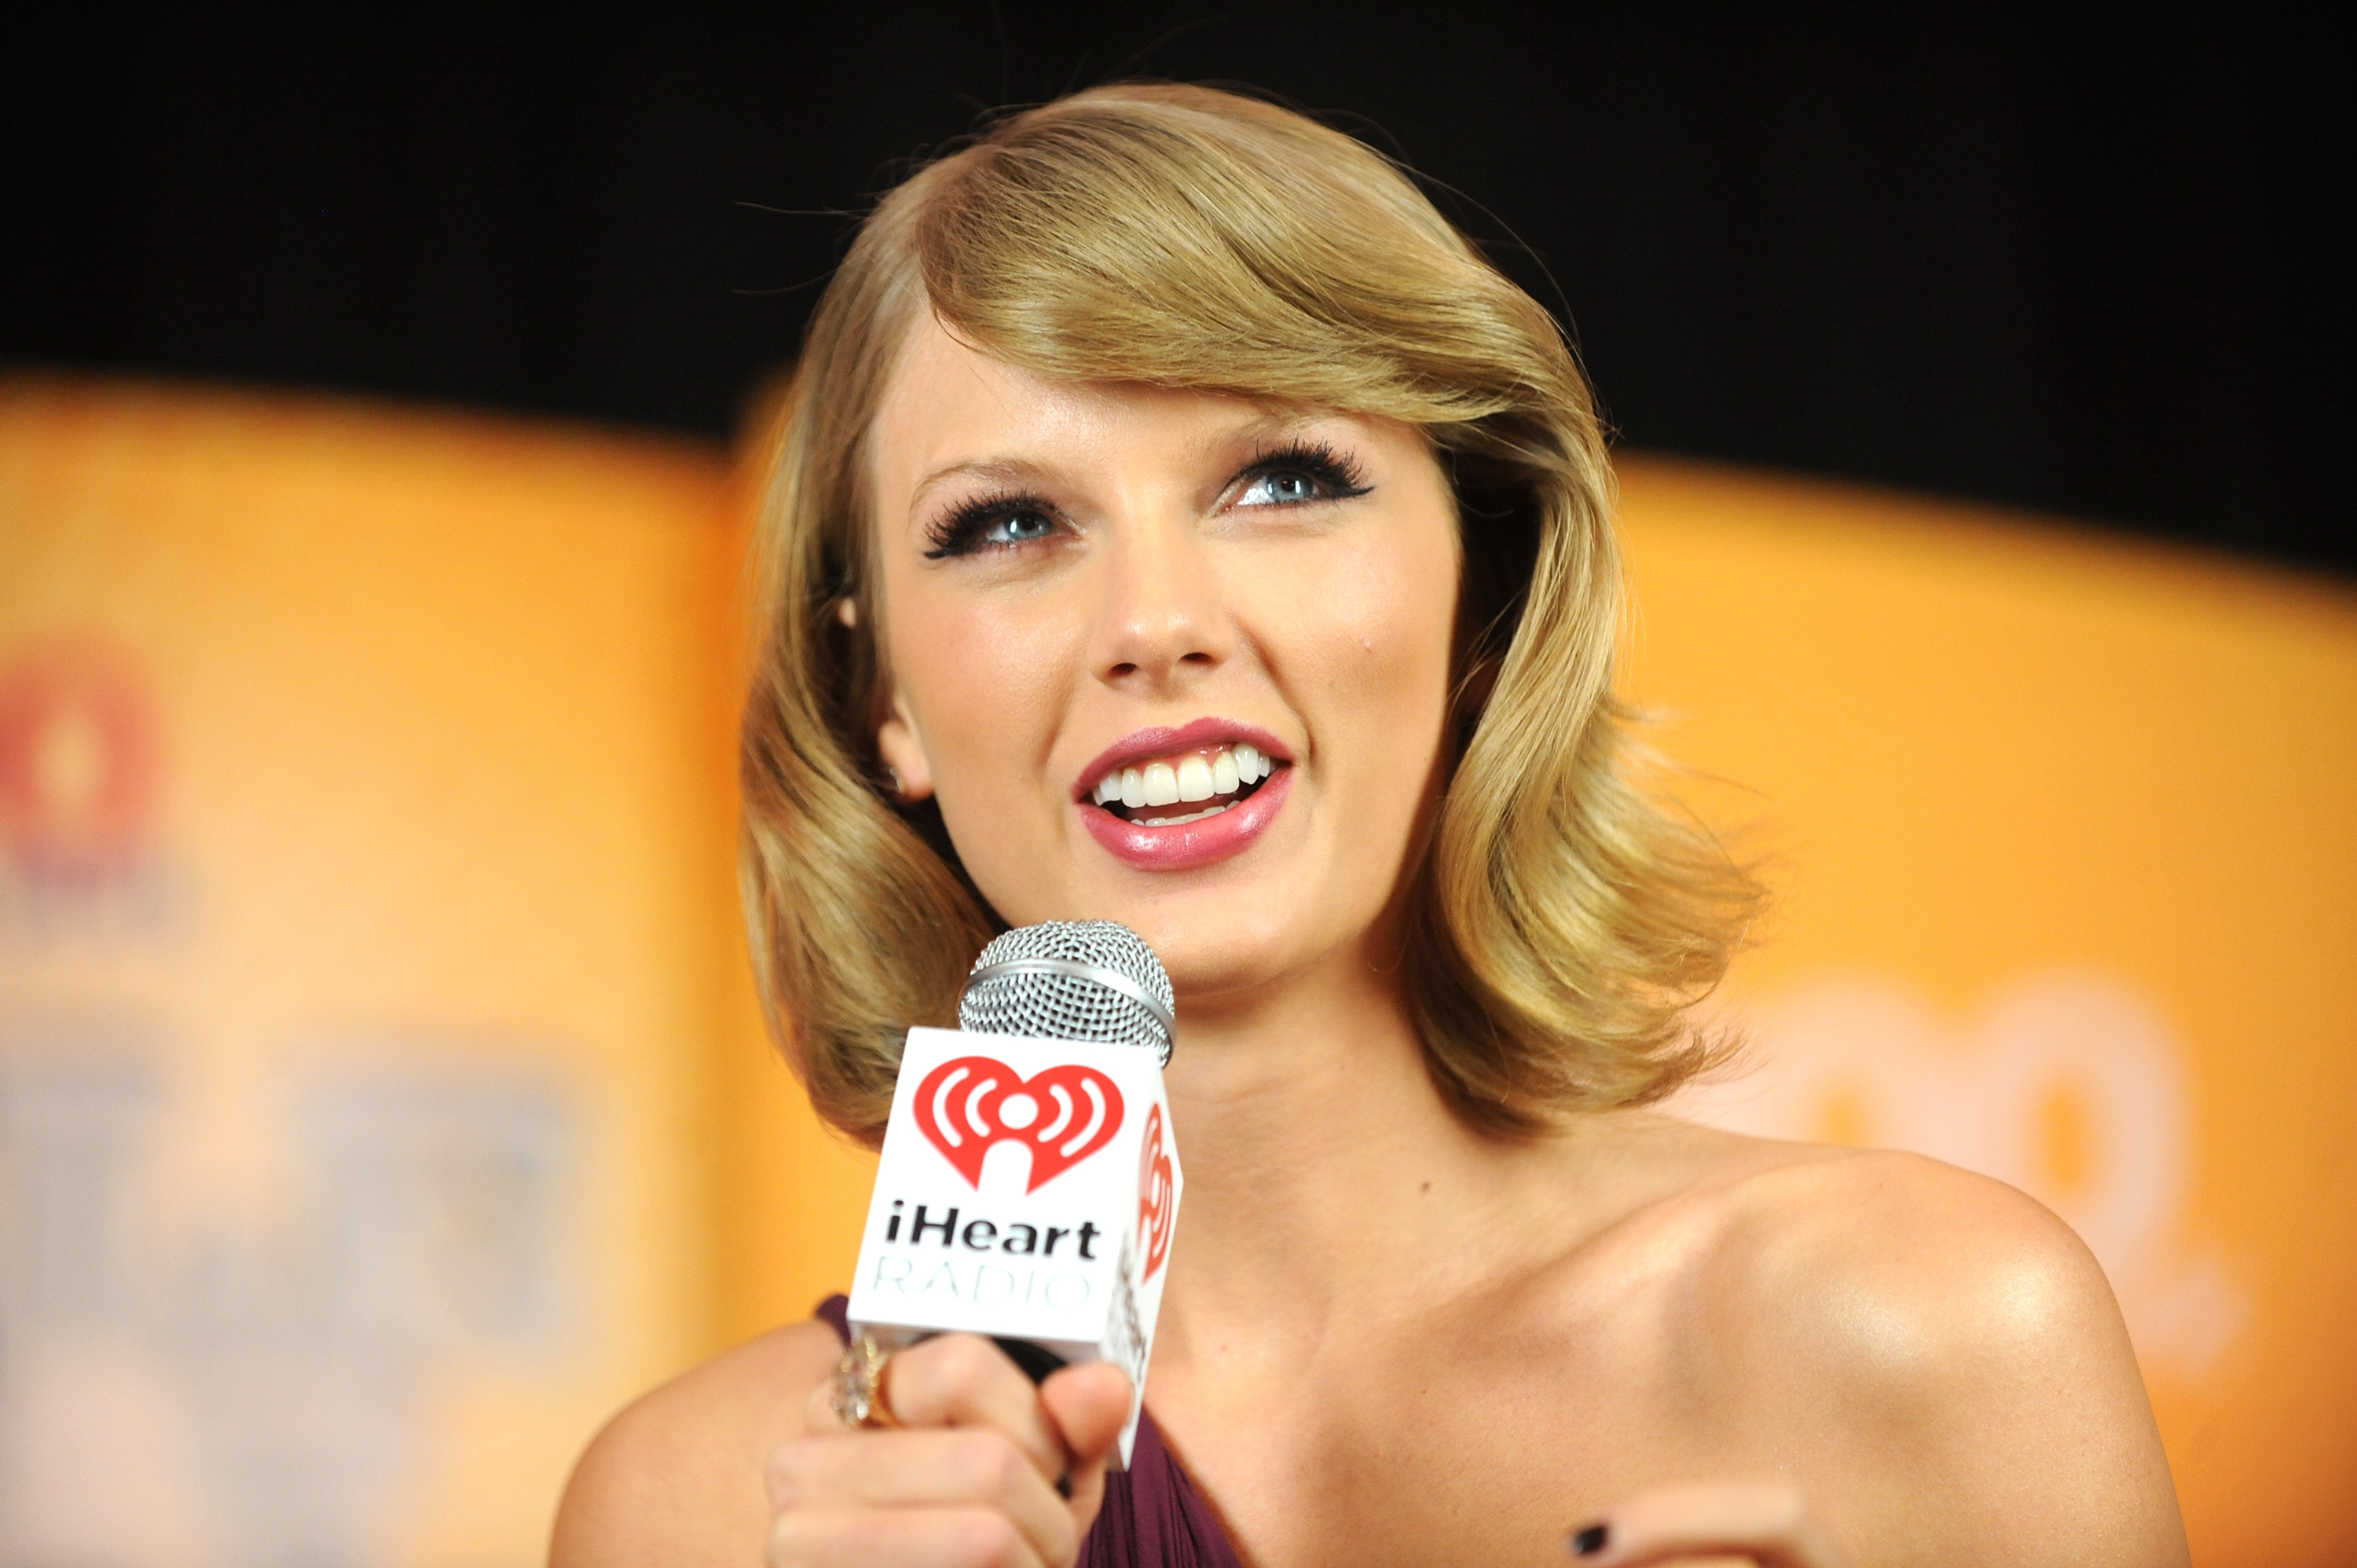 Z100's Jingle Ball 2014 Presented By Goldfish Puffs - Backstage